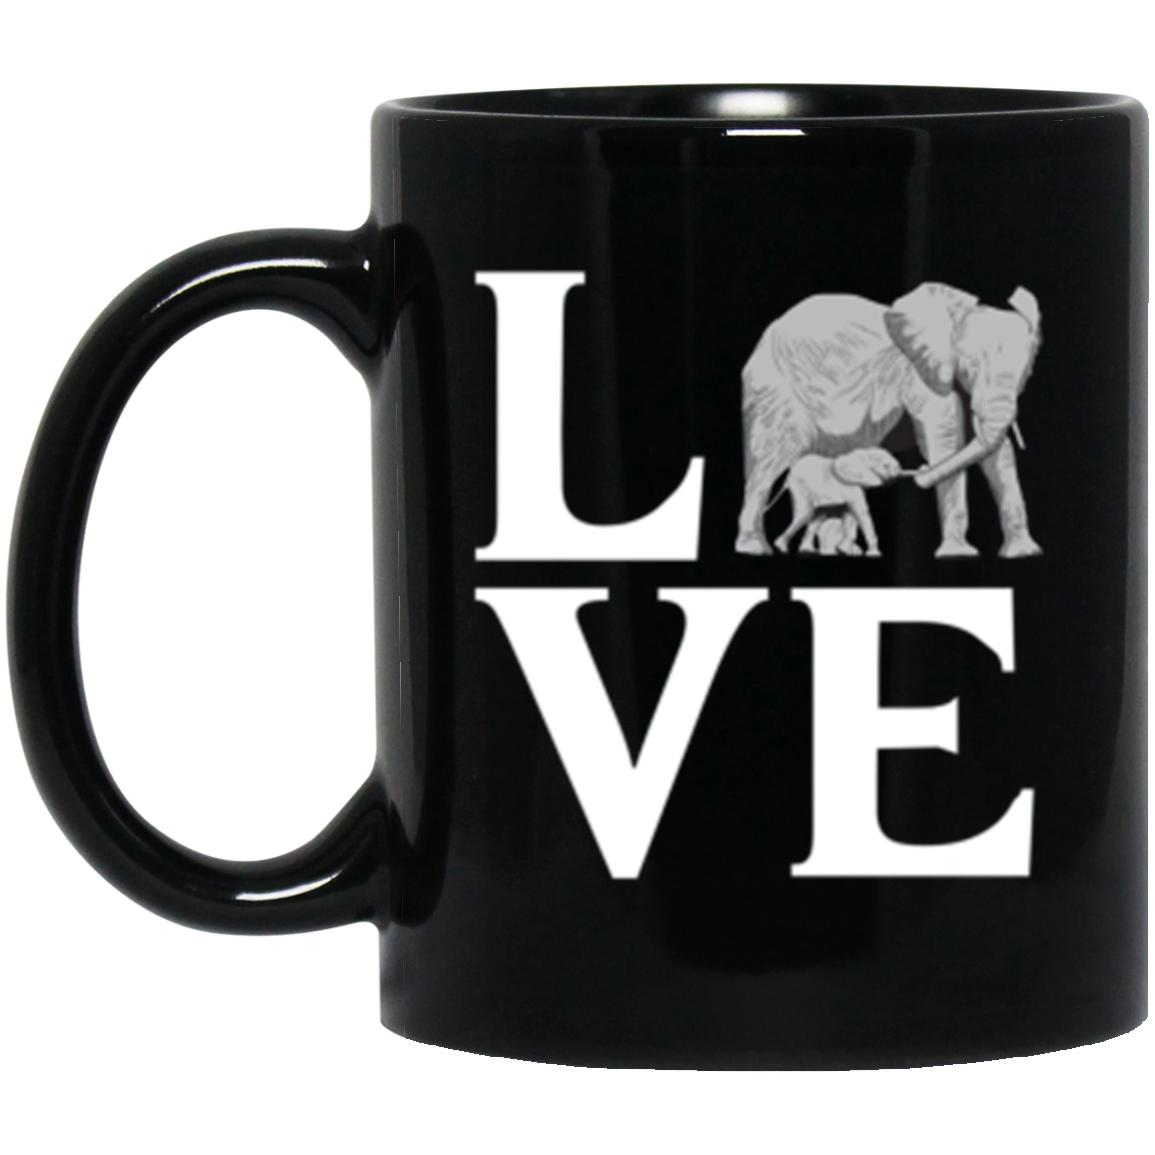 Drinkware - Elephant Love Mug 11oz (2-sided)